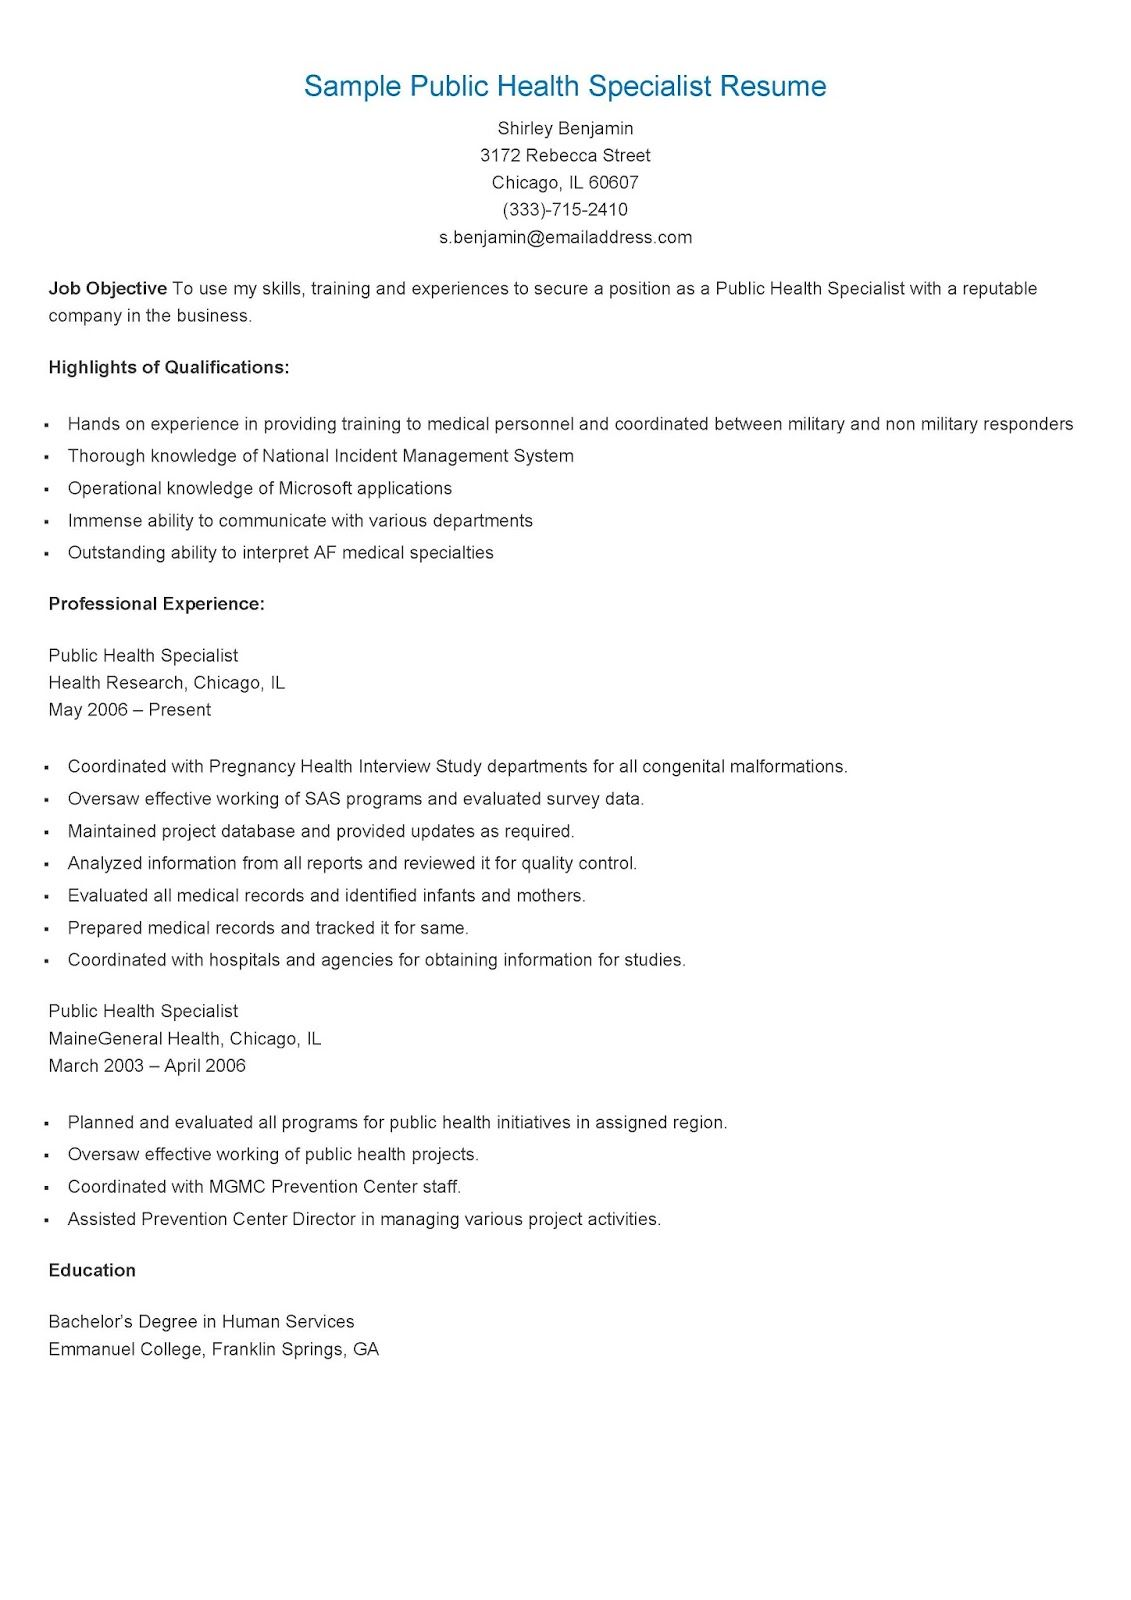 Sample Public Health Specialist Resume | resame | Public health